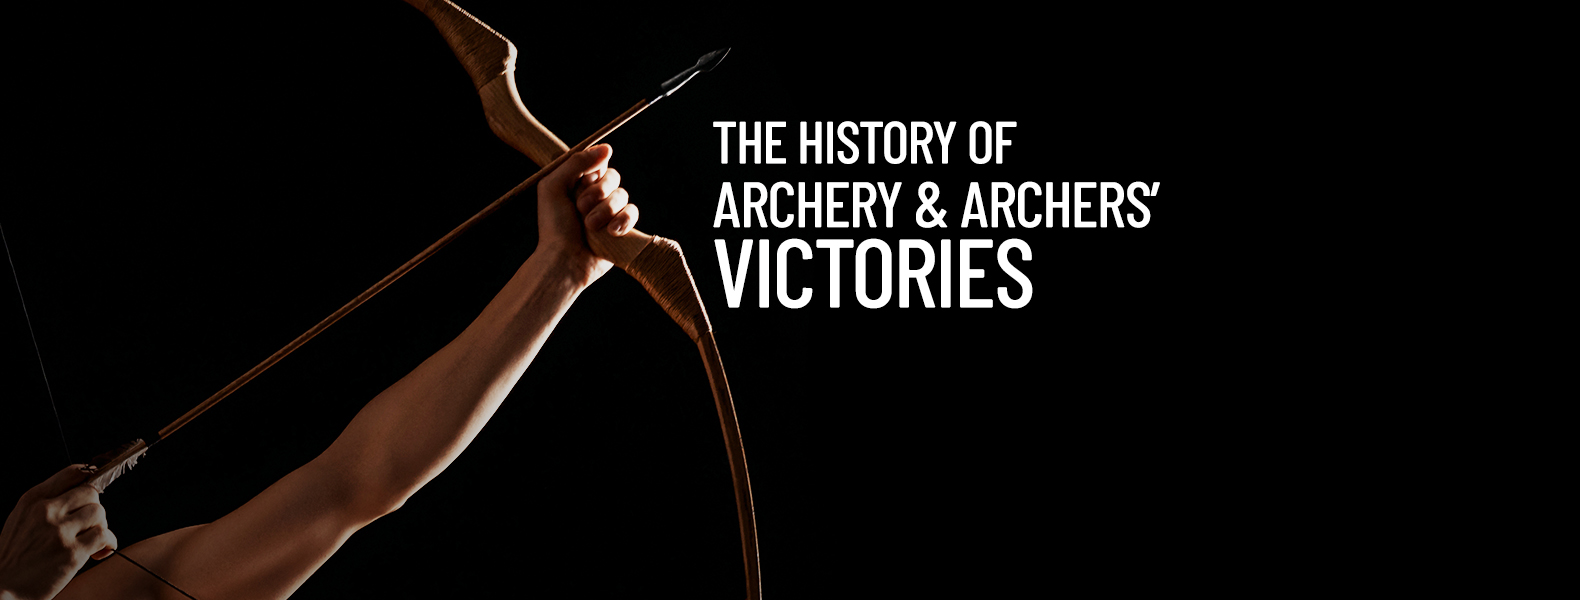 Archery is a sport at TIPS